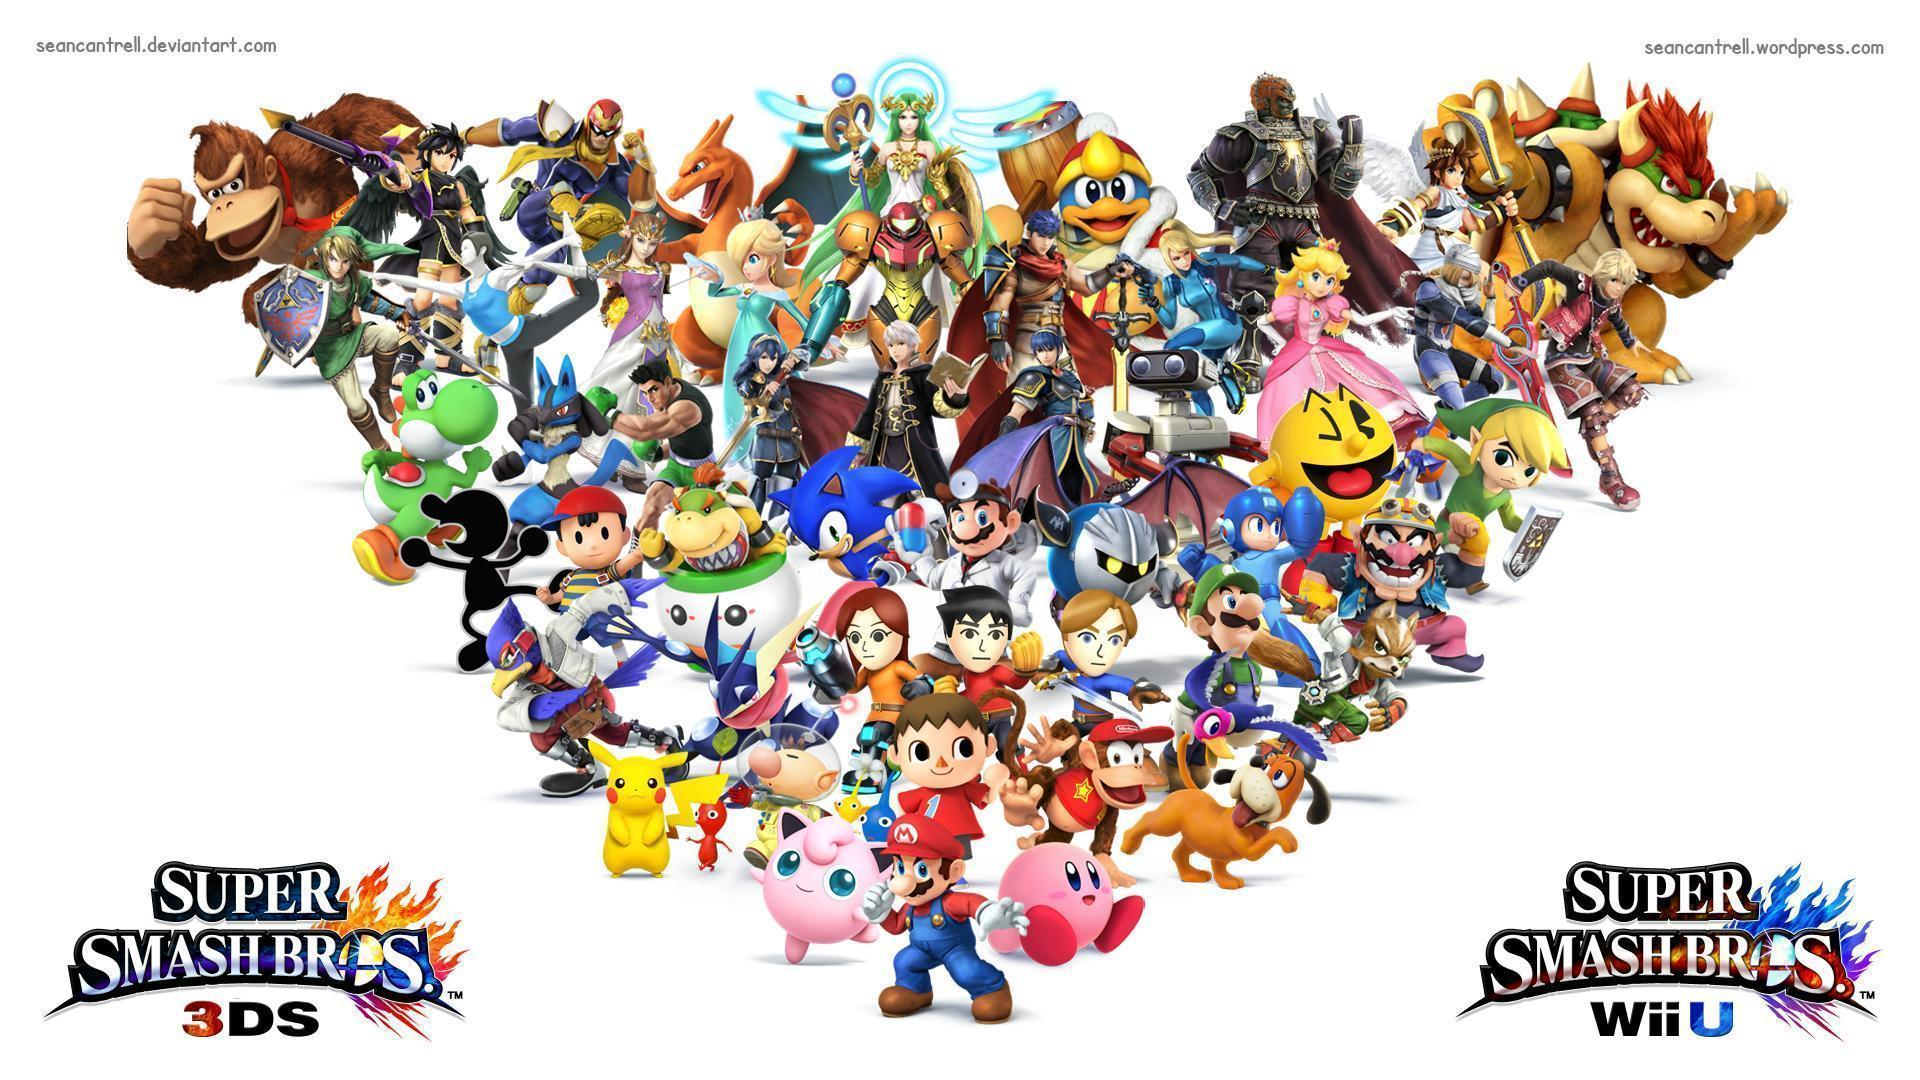 Super Smash Bros Wii U / 3DS Wallpapers by seancantrell